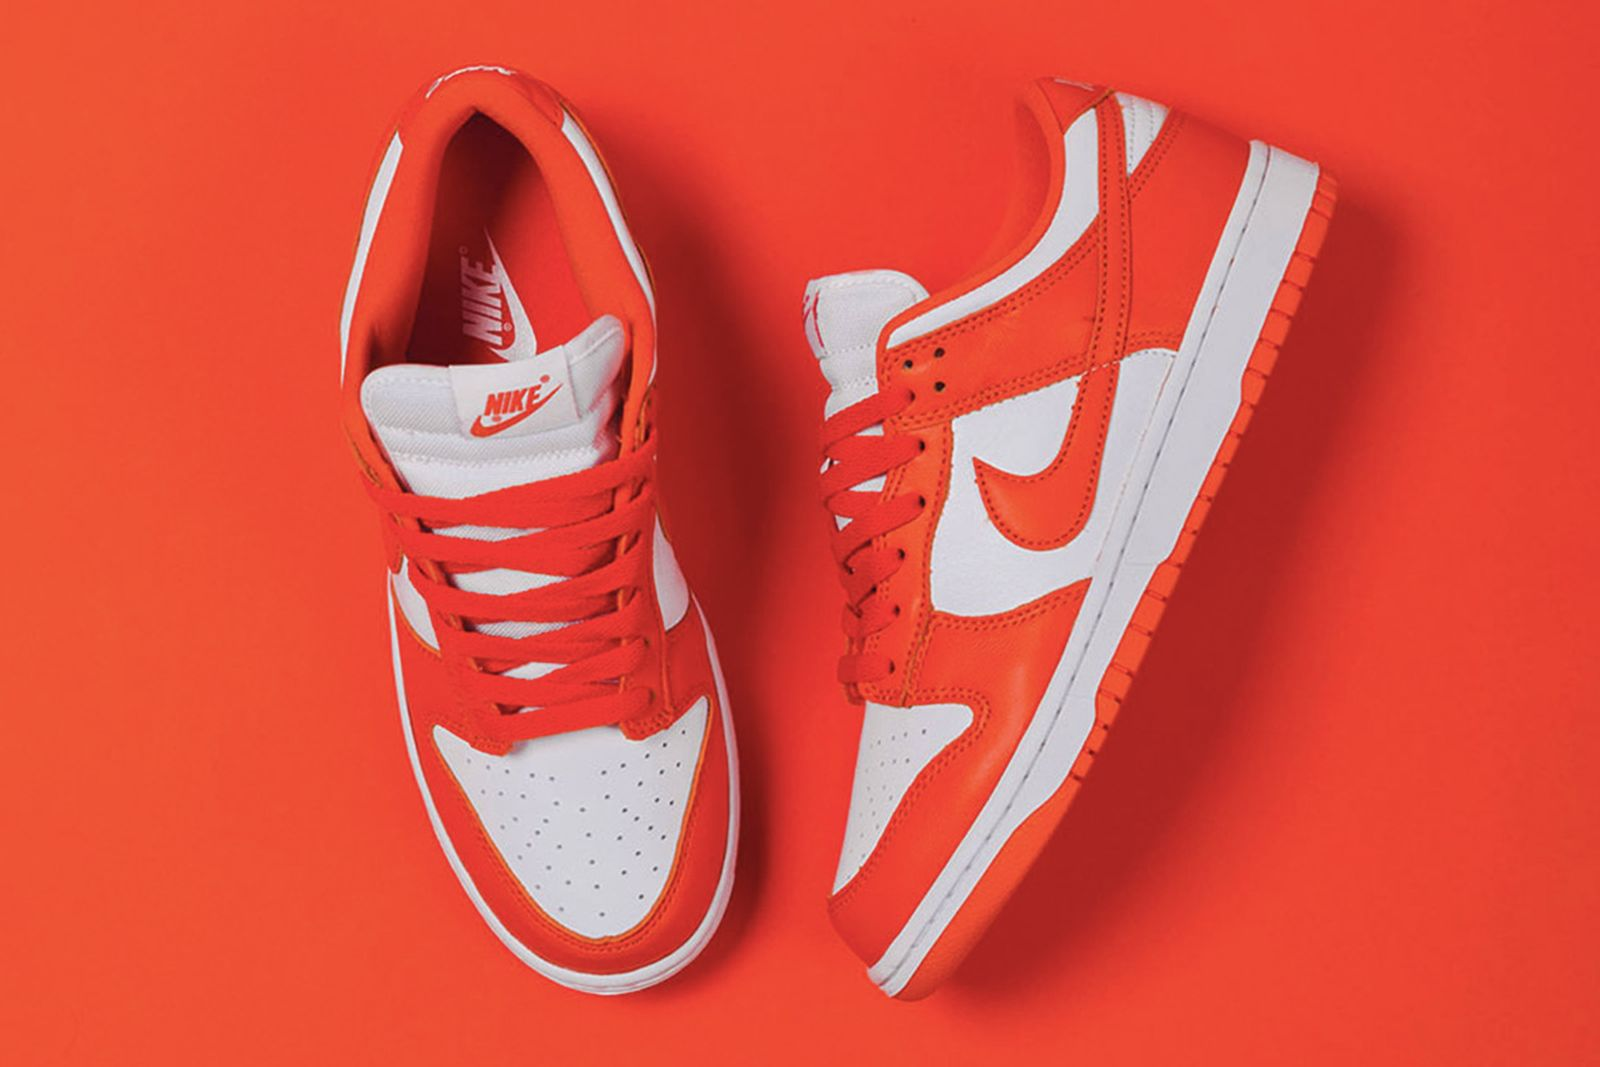 nike-dunk-low-syracuse-release-date-info-02